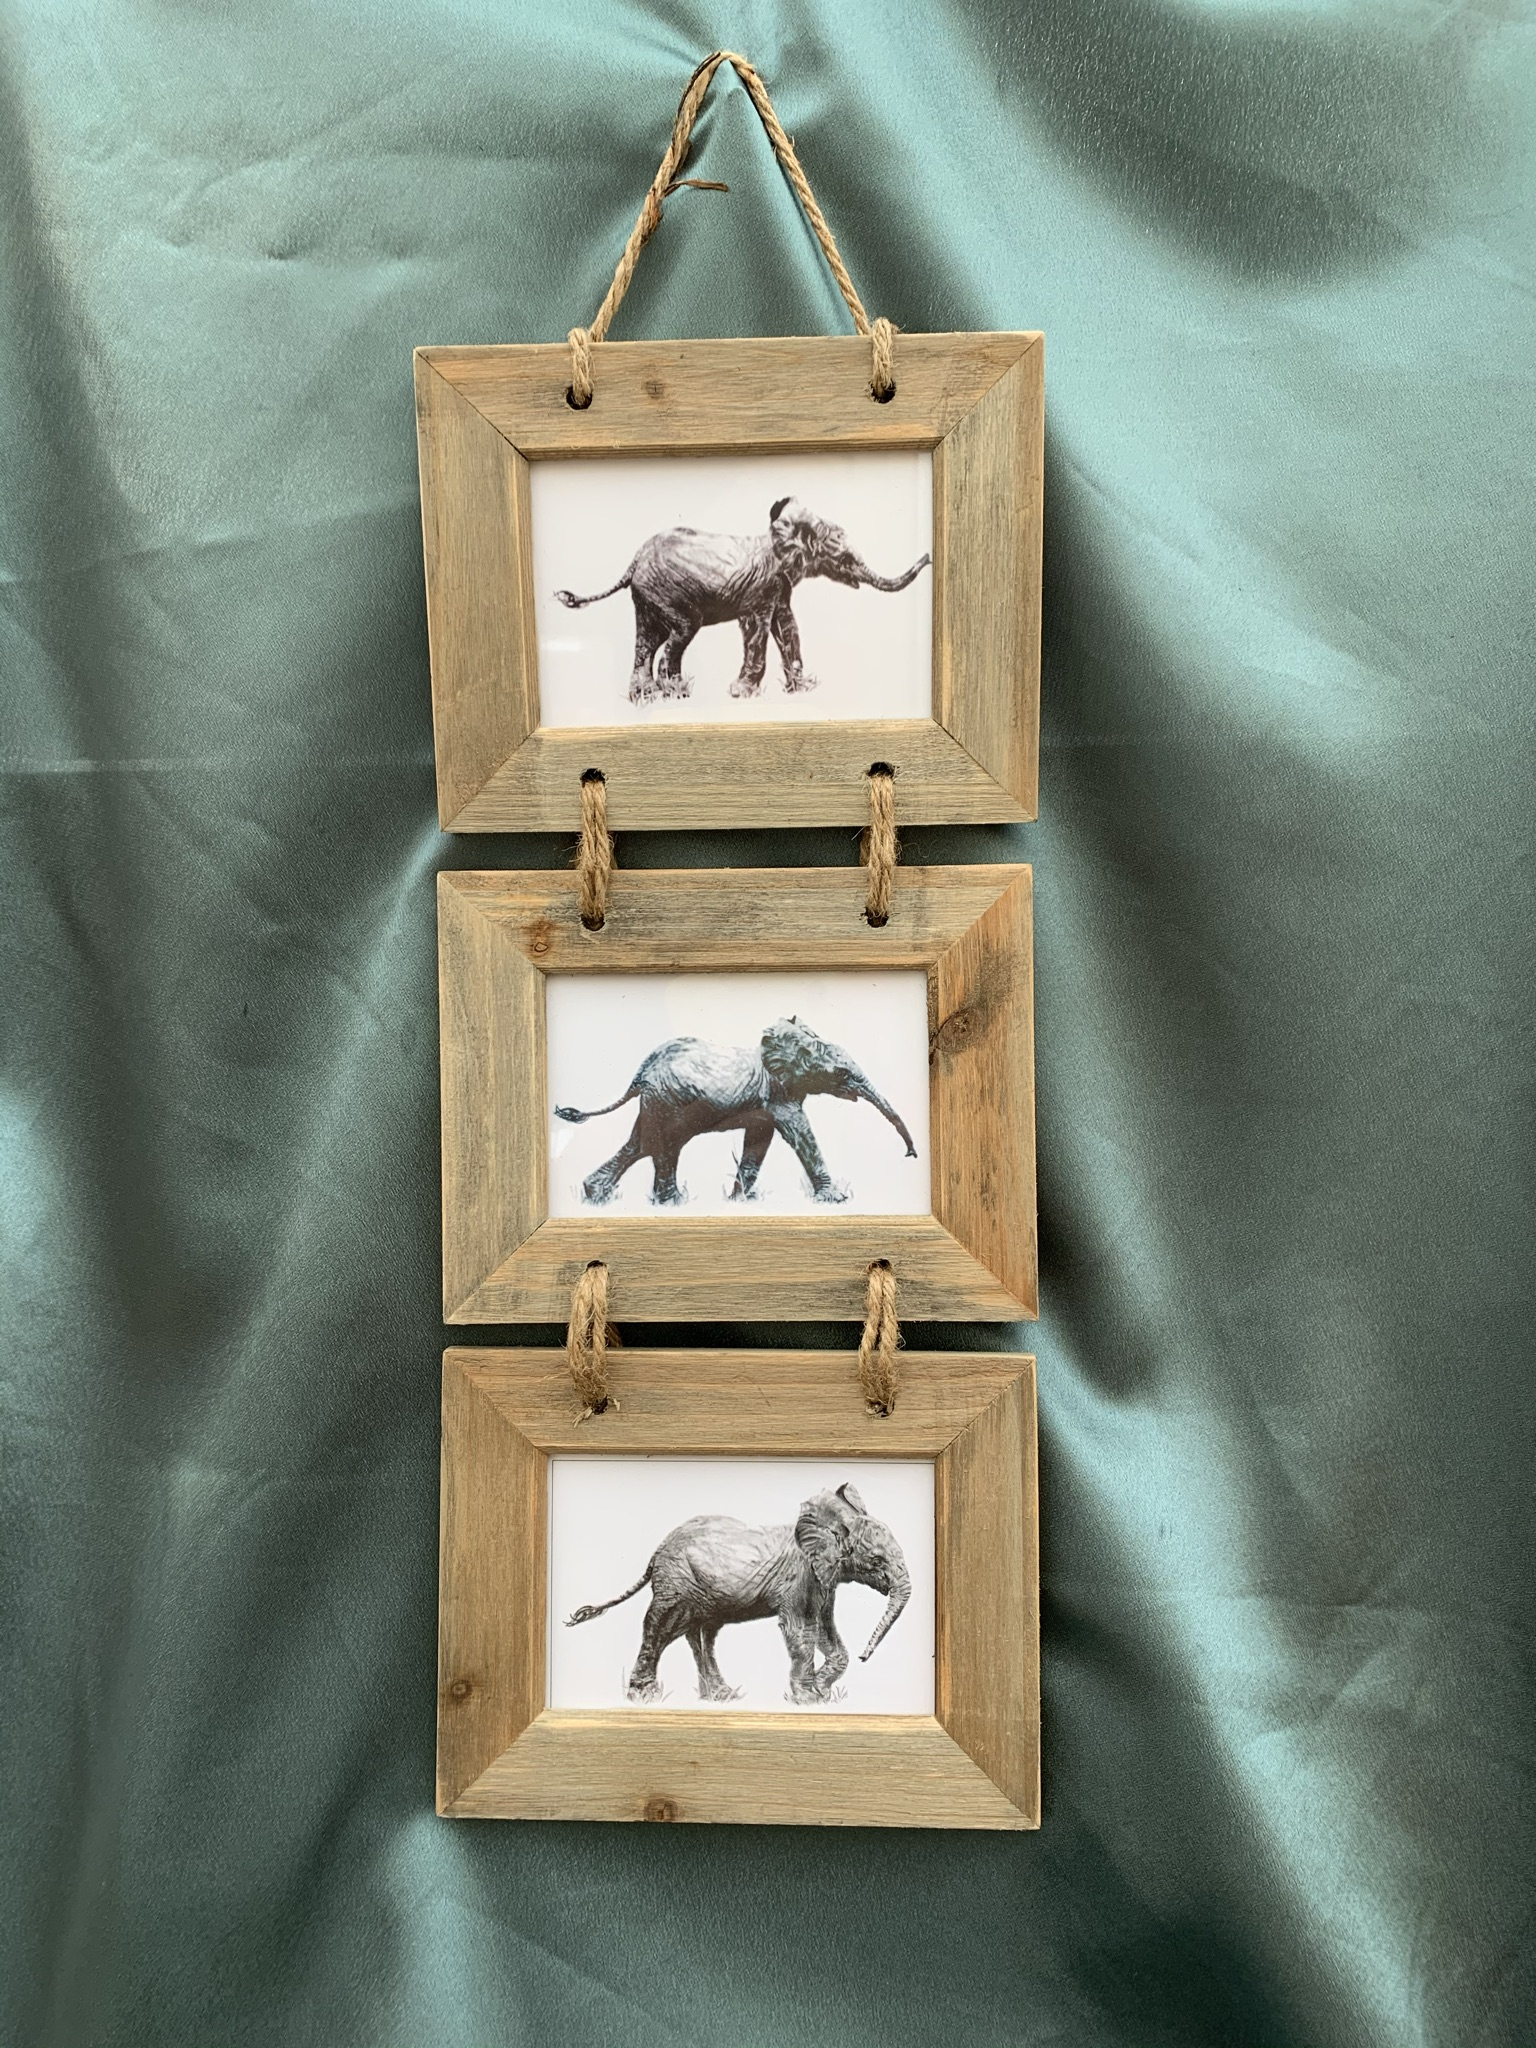 Trio of Elephant Pictures - Rustic Frame - £25